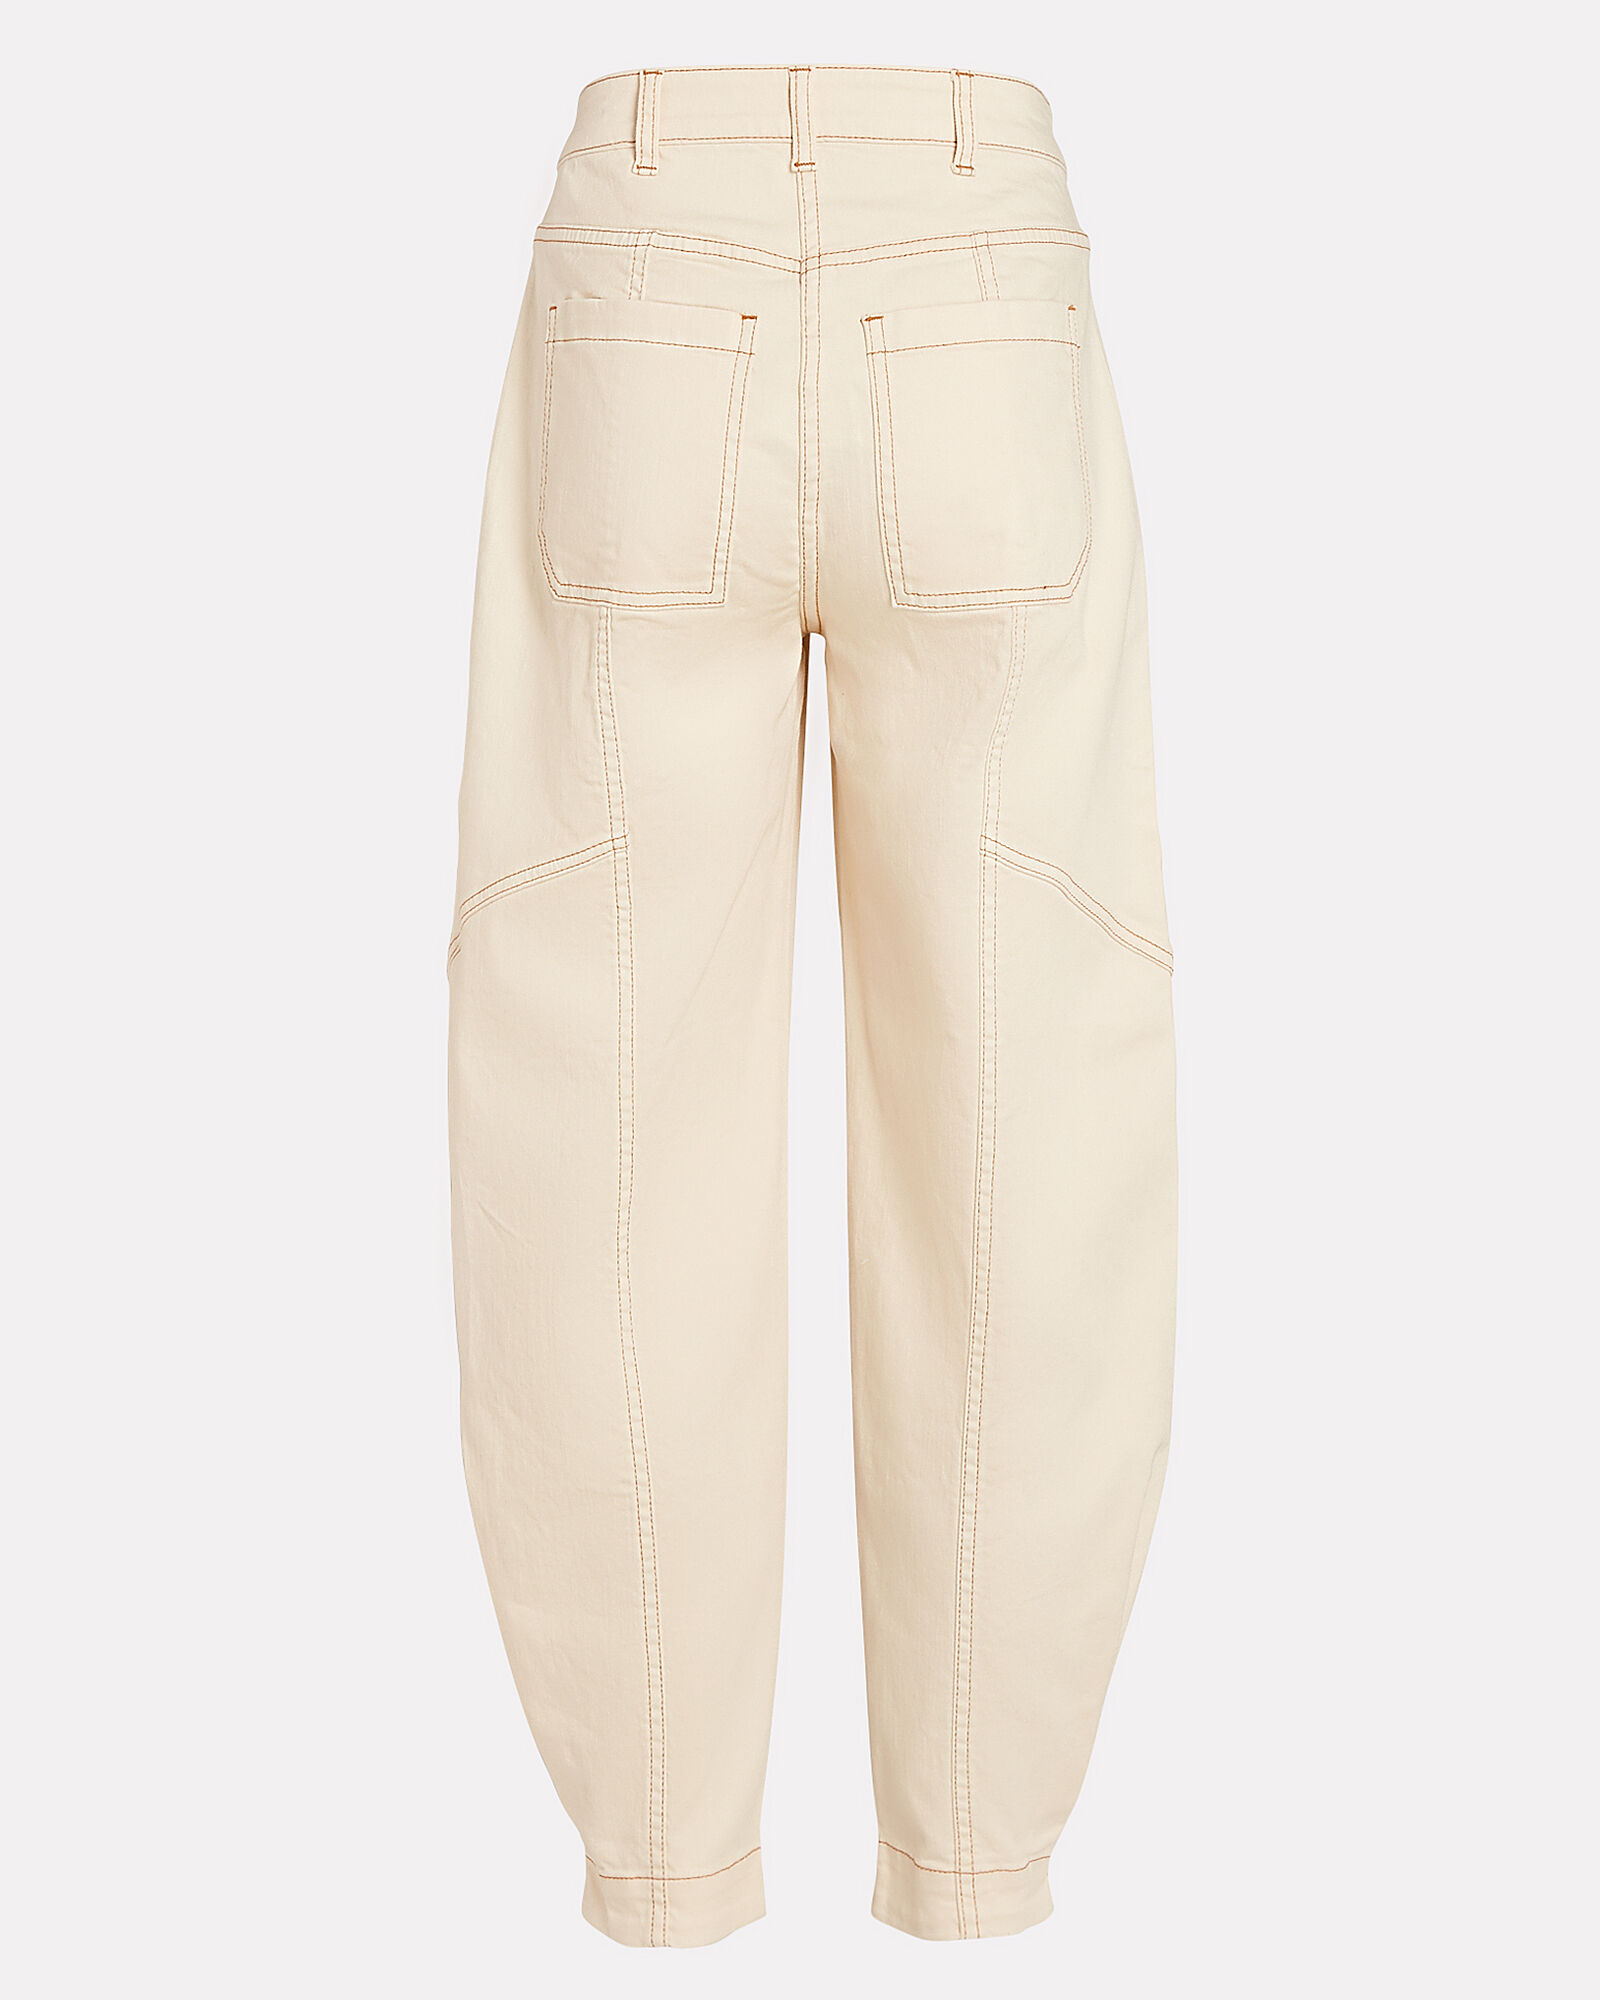 Brodie Cropped High-Rise Jeans, IVORY, hi-res